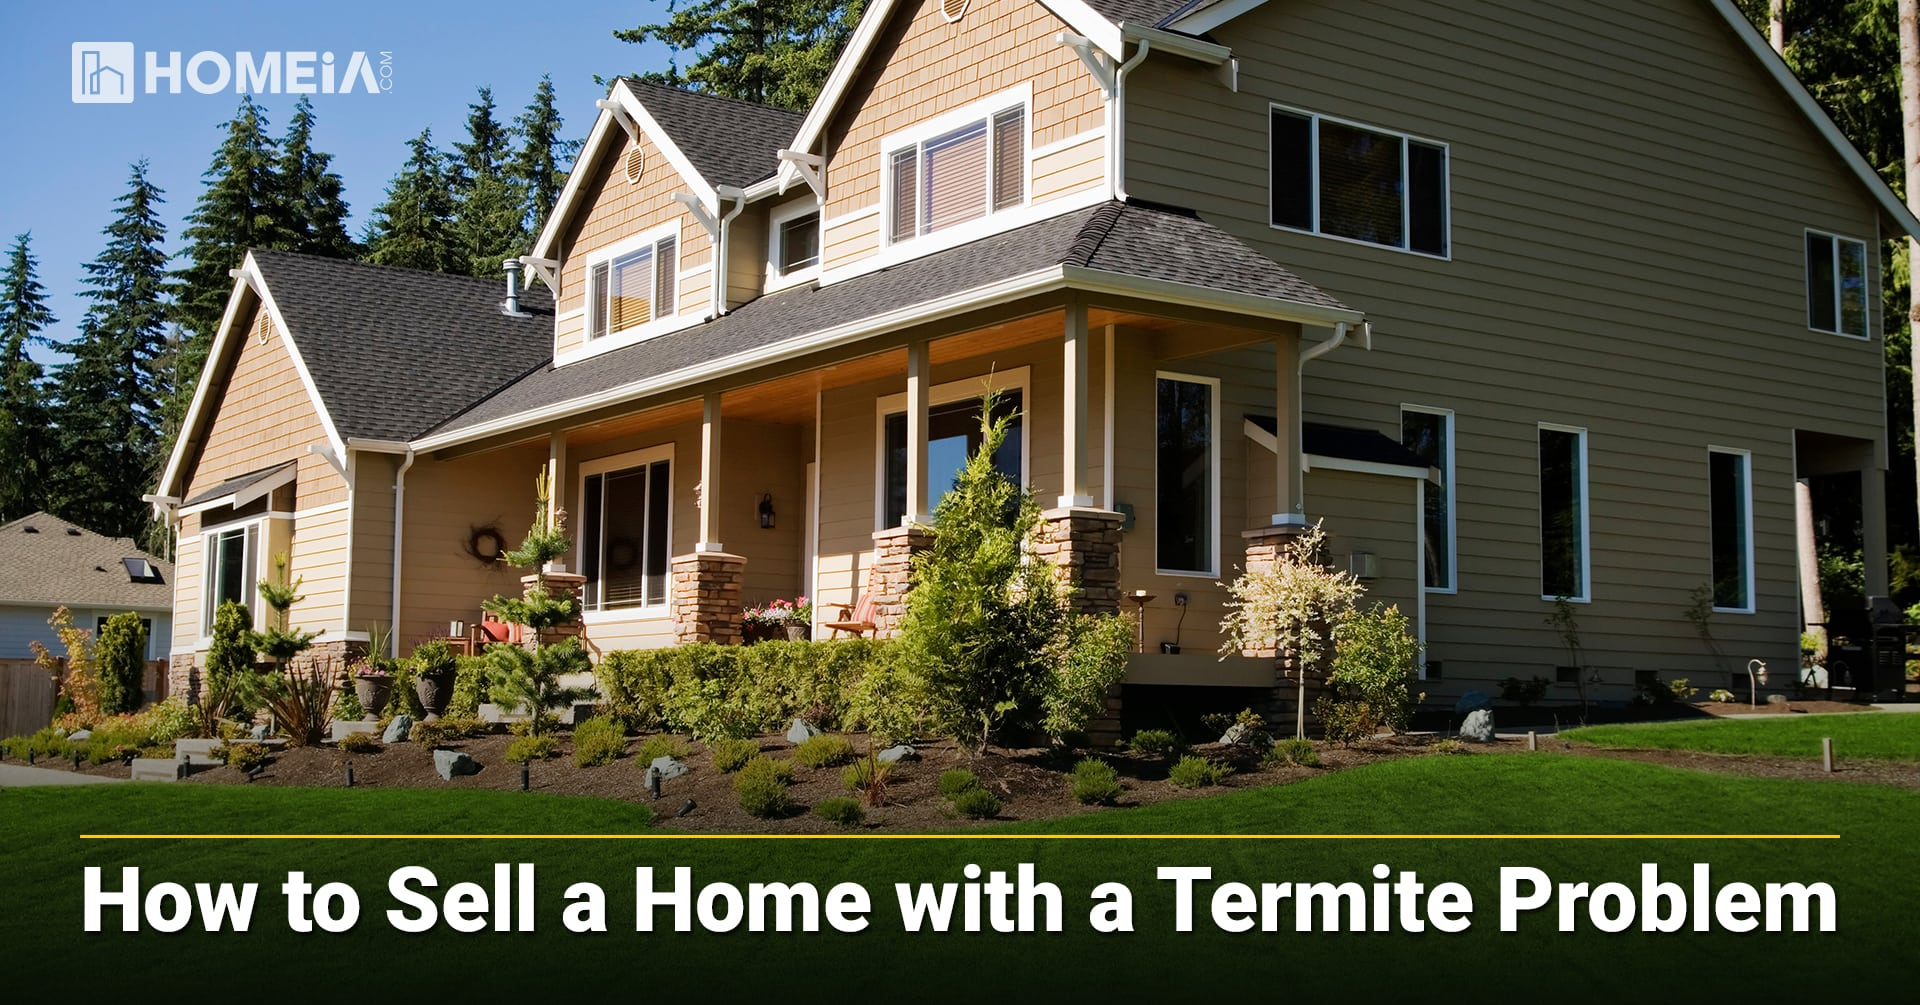 How to Sell a Home with a Termite Problem